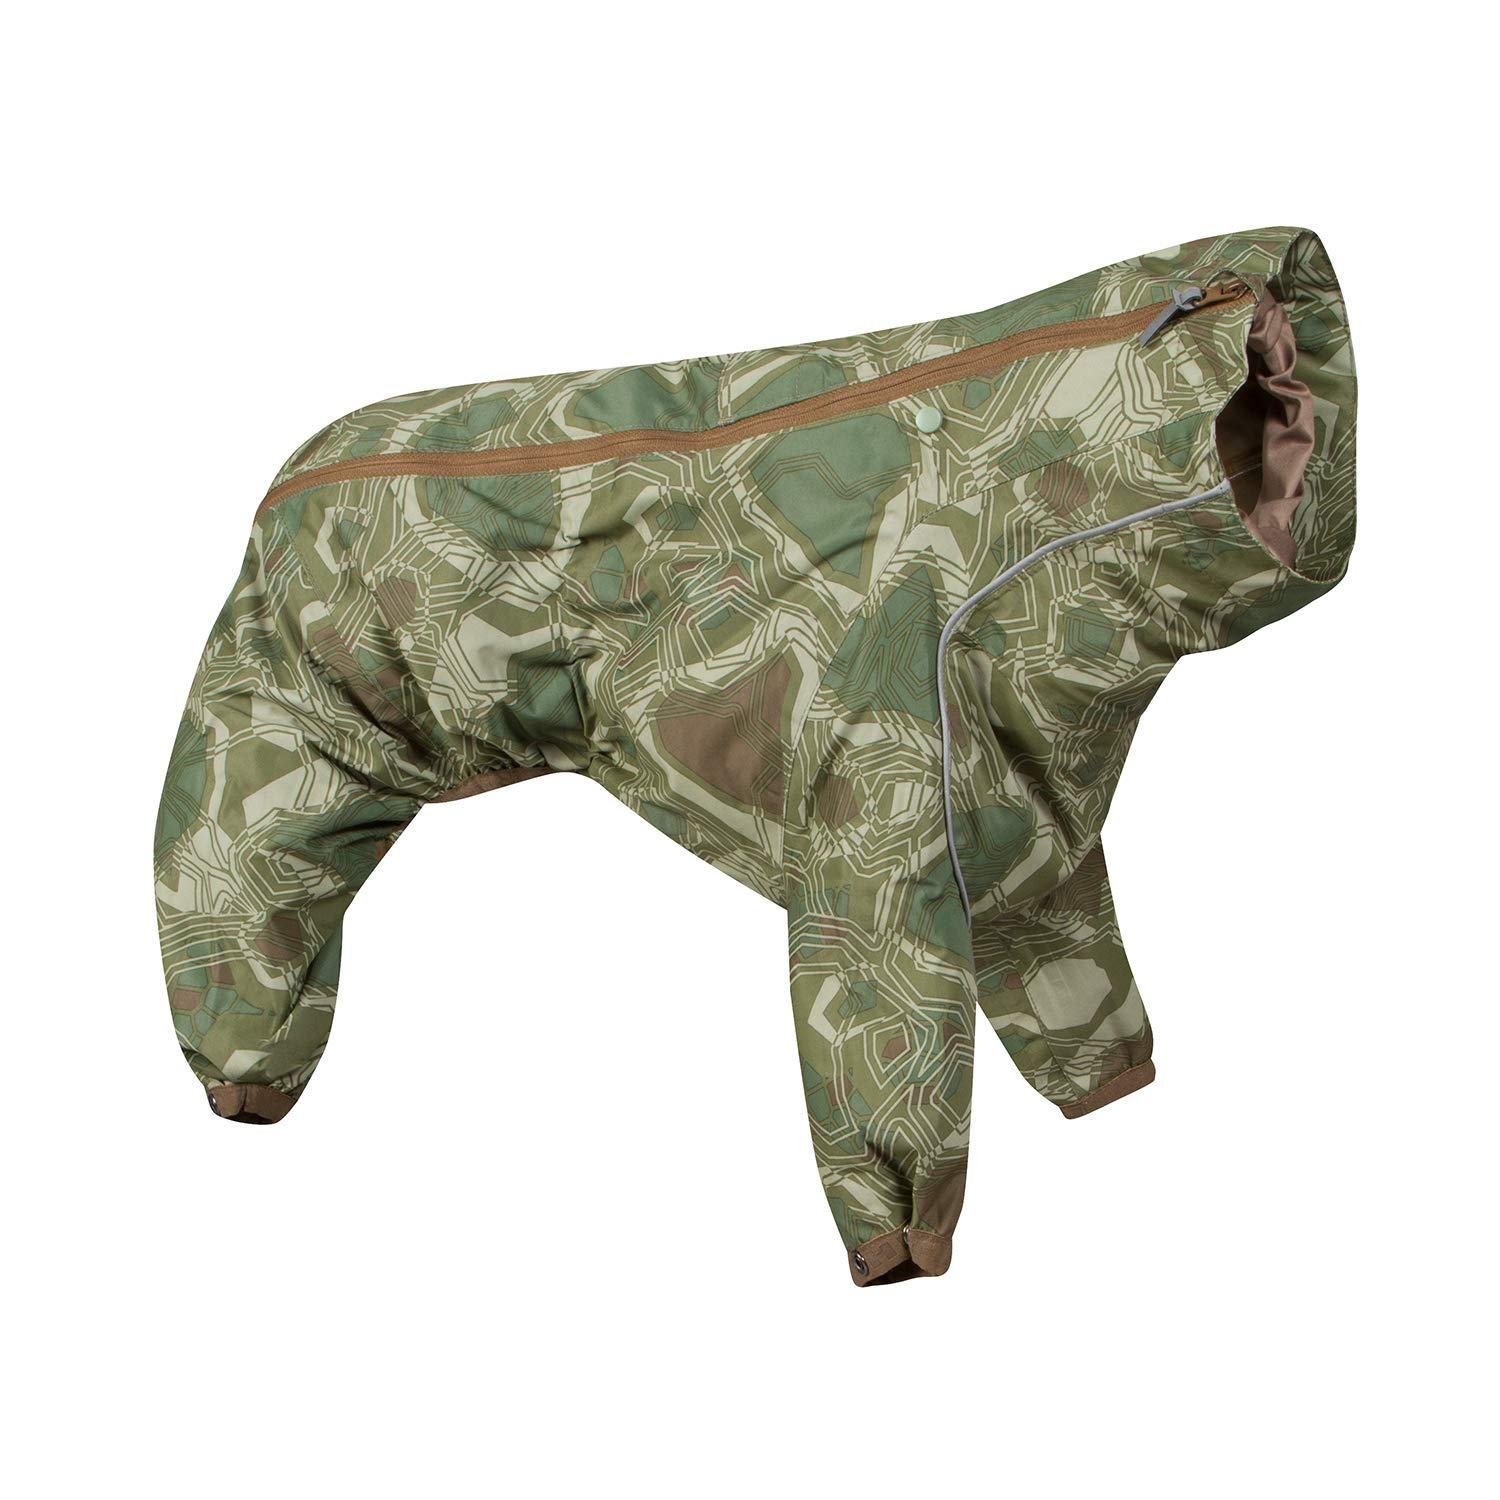 Hurtta Downpour Suit, Weatherproof Dog Rain/Snow Coat, Green Camo, 28M by Hurtta